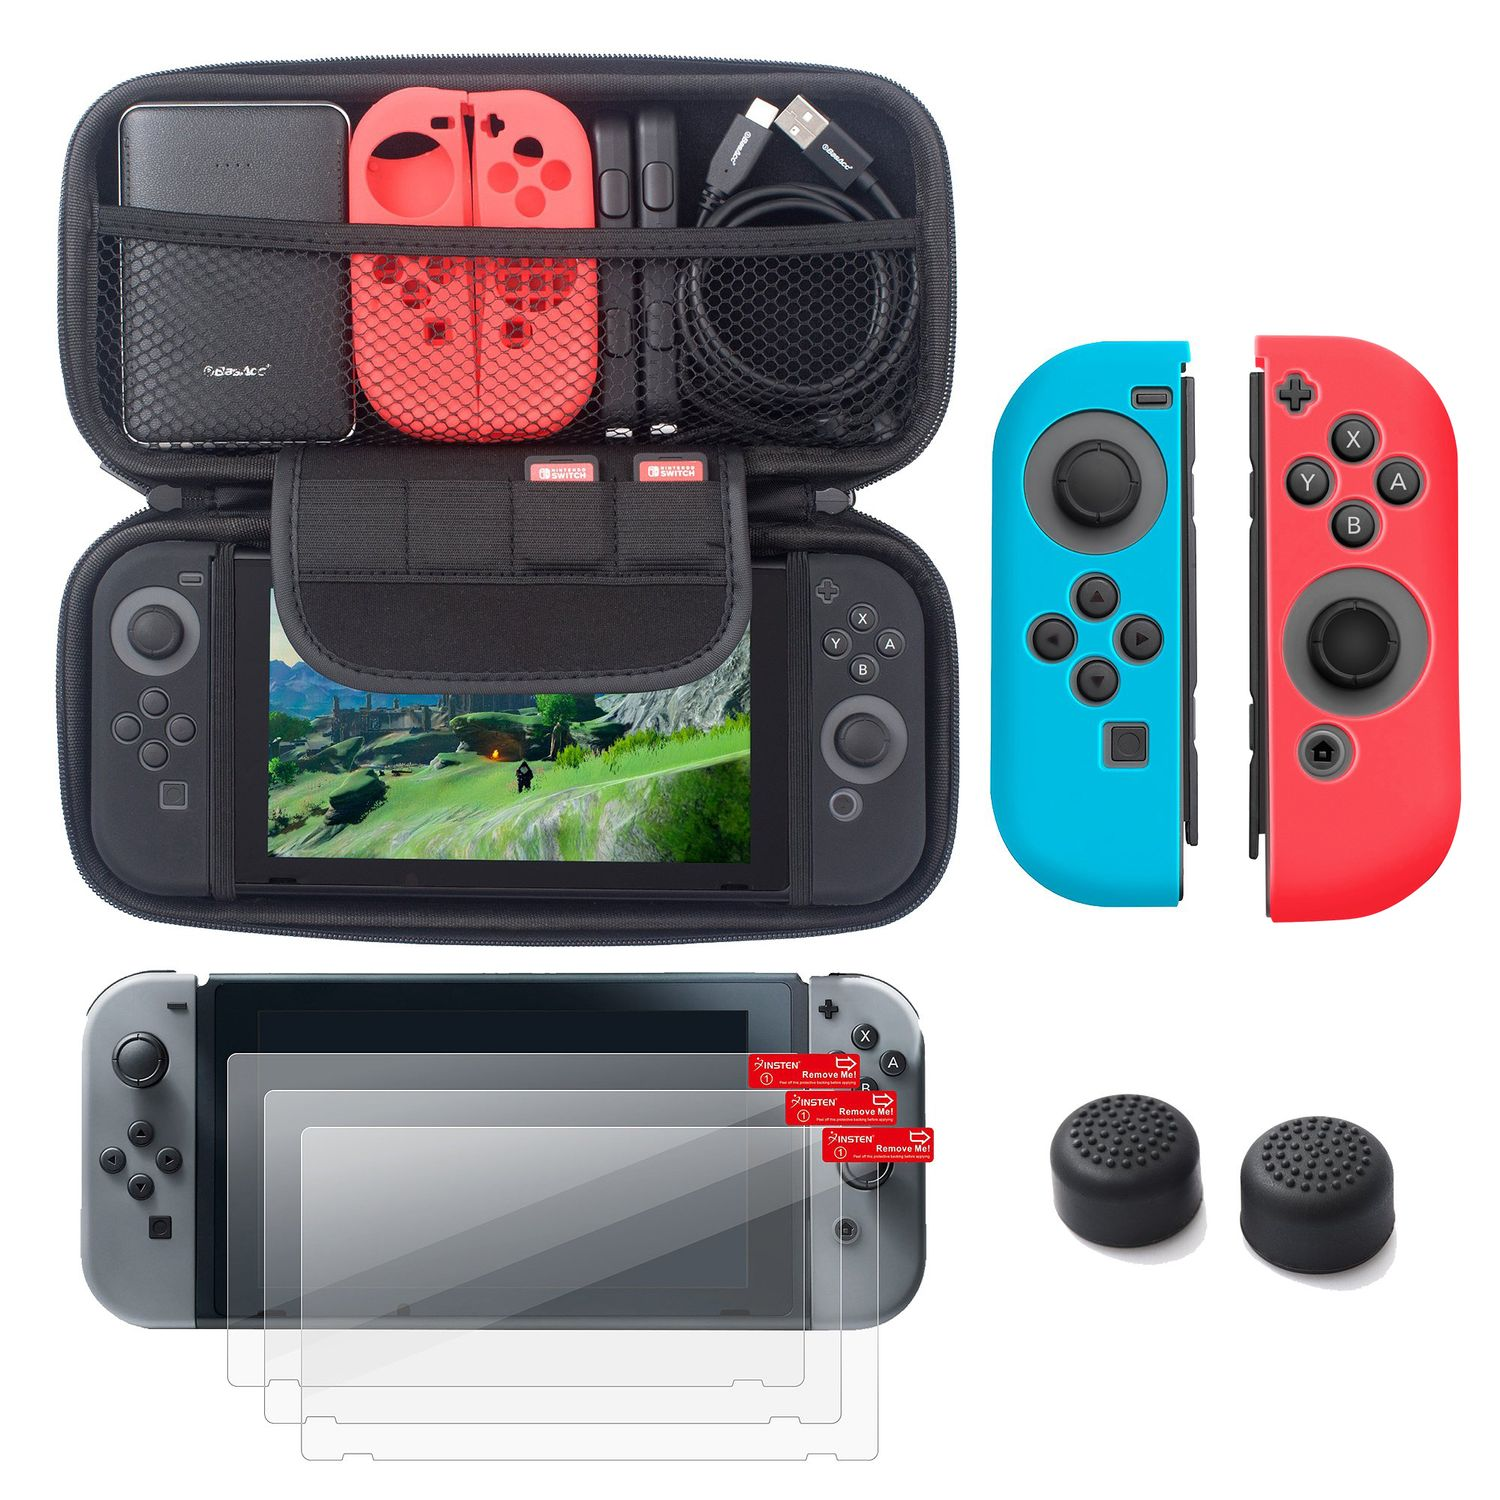 Nintendo Switch 5 items Starter Kit, by Insten Carrying Case Hard Shell Cover + 3-pack LCD Guard + Joy-Con Controller Skin [Left BLUE/Right RED] + Joy-Con Thumb Grip Stick Caps for Nintendo Switch